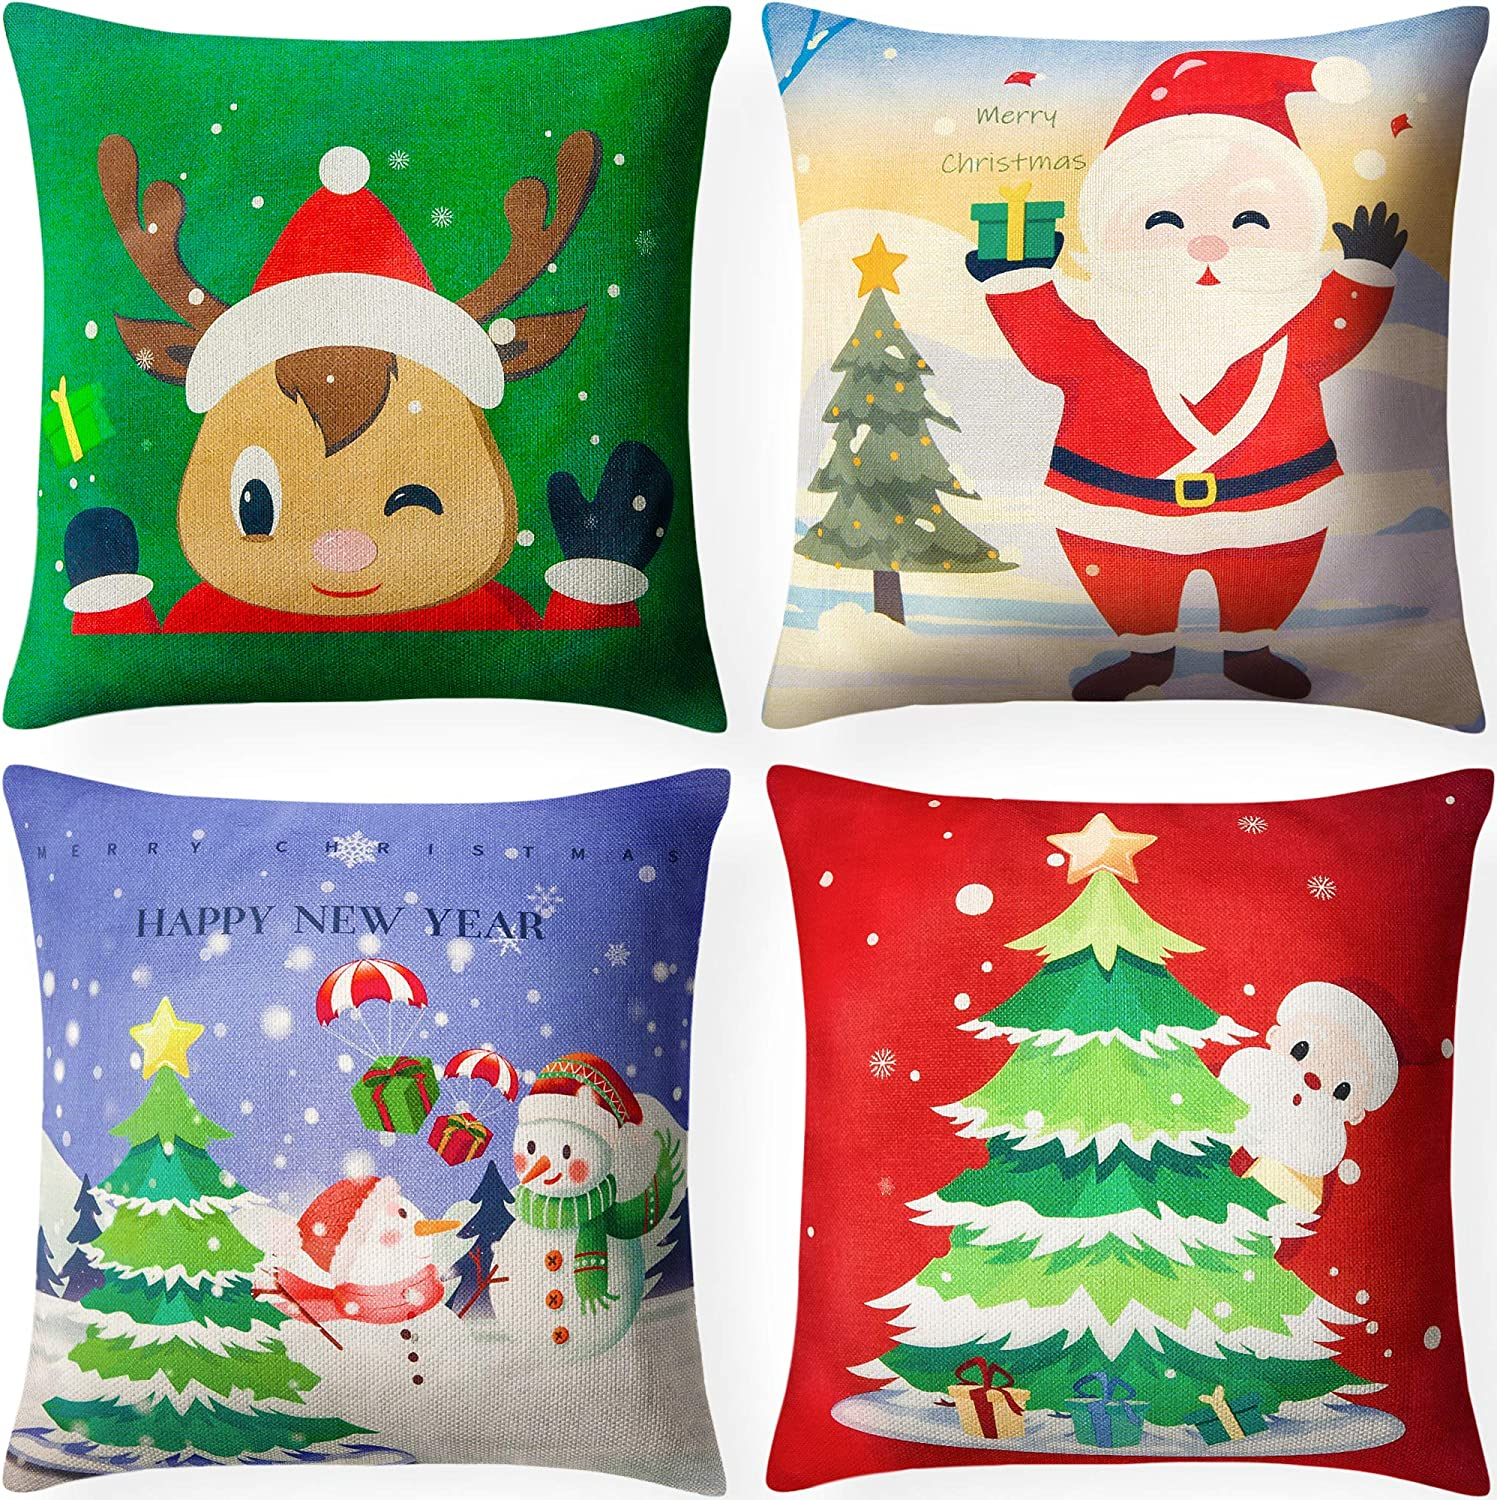 Funny Snowman and Reindeer Christmas pillow covers